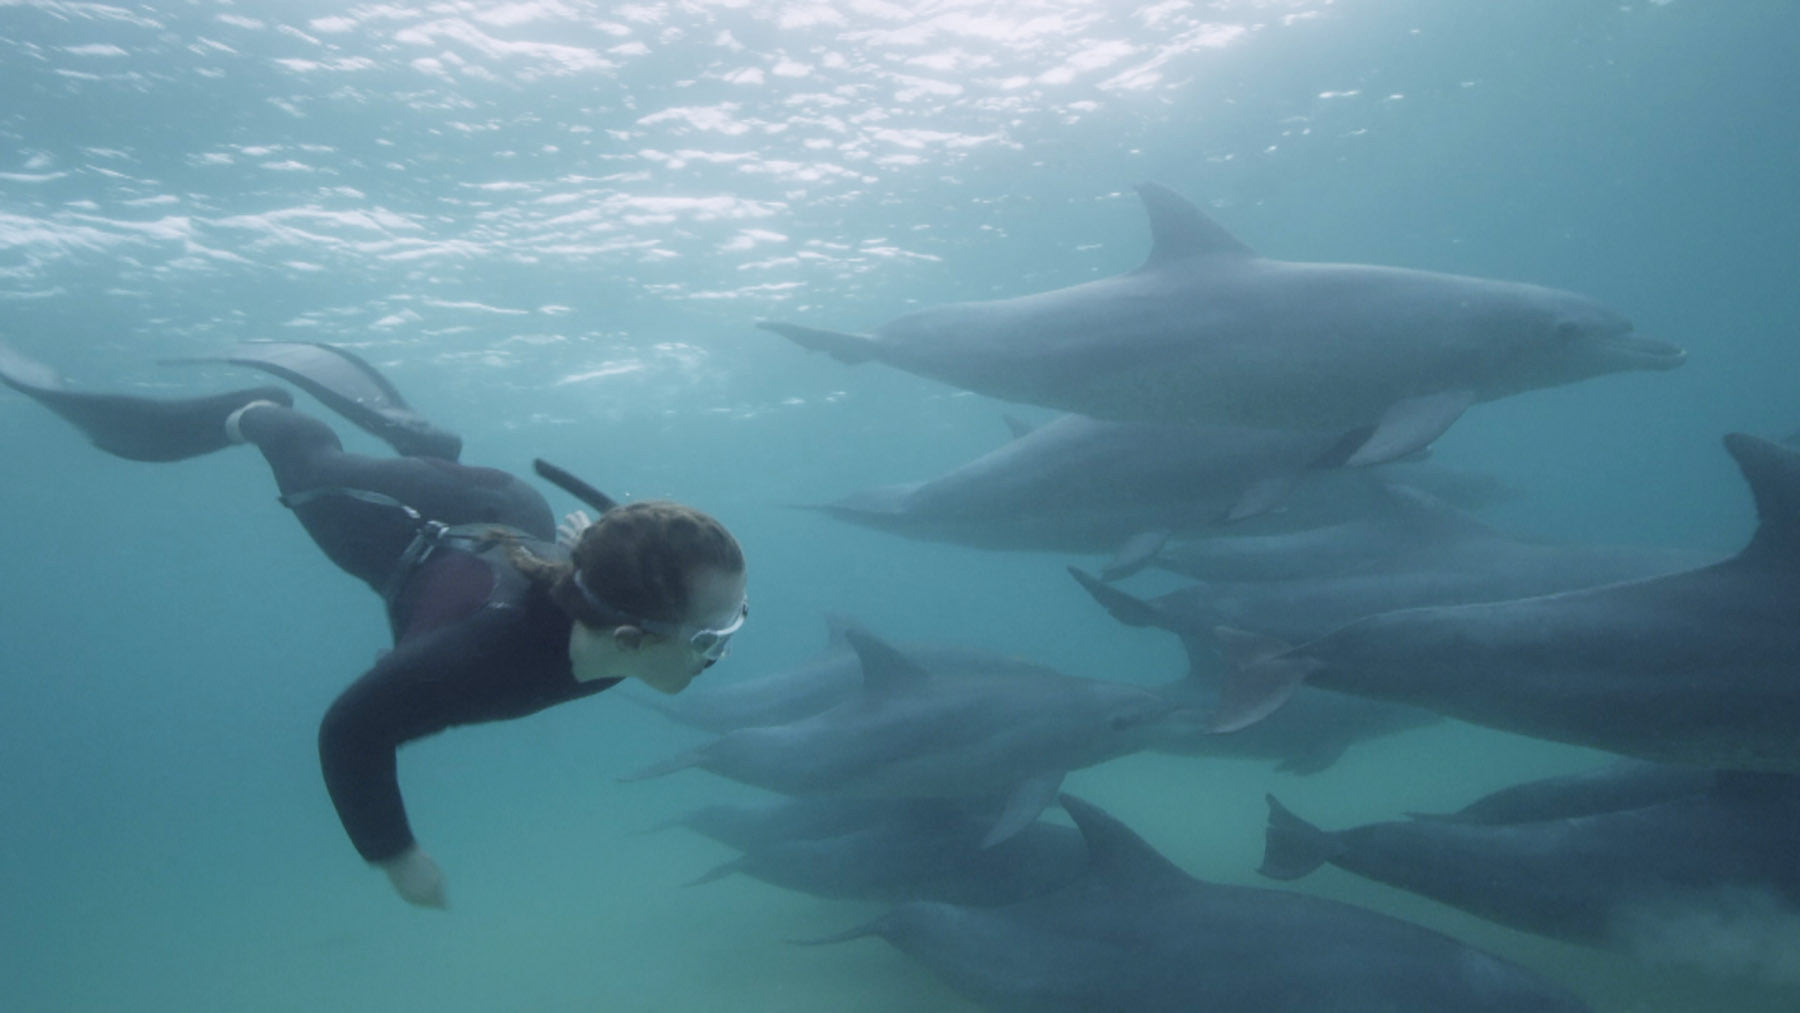 Ellie Simmonds freediving with Dolphins in Mozambique